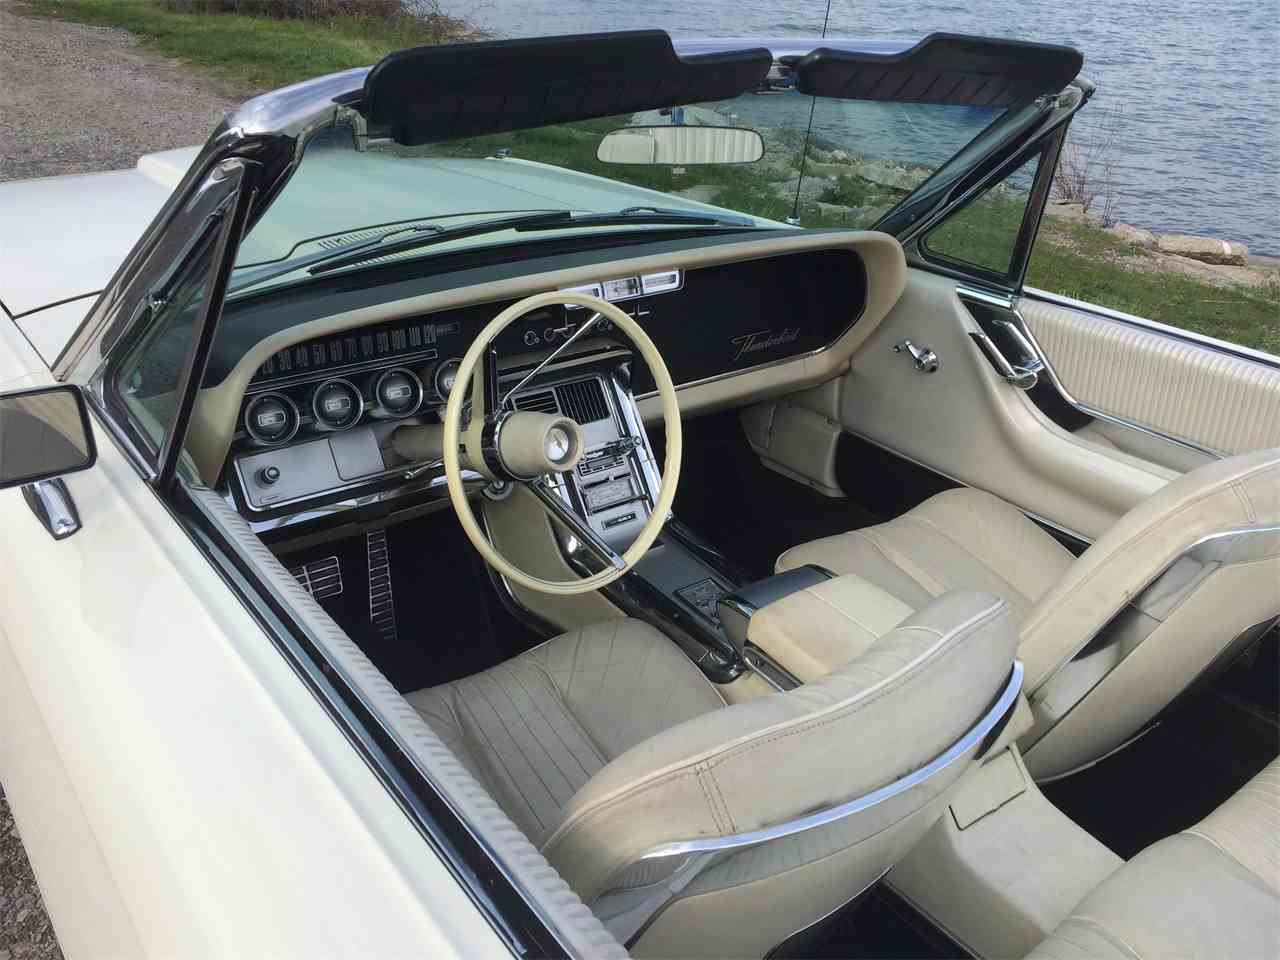 Large Picture of 1964 Thunderbird located in Grosse Ile Michigan - $27,500.00 Offered by a Private Seller - I1T6